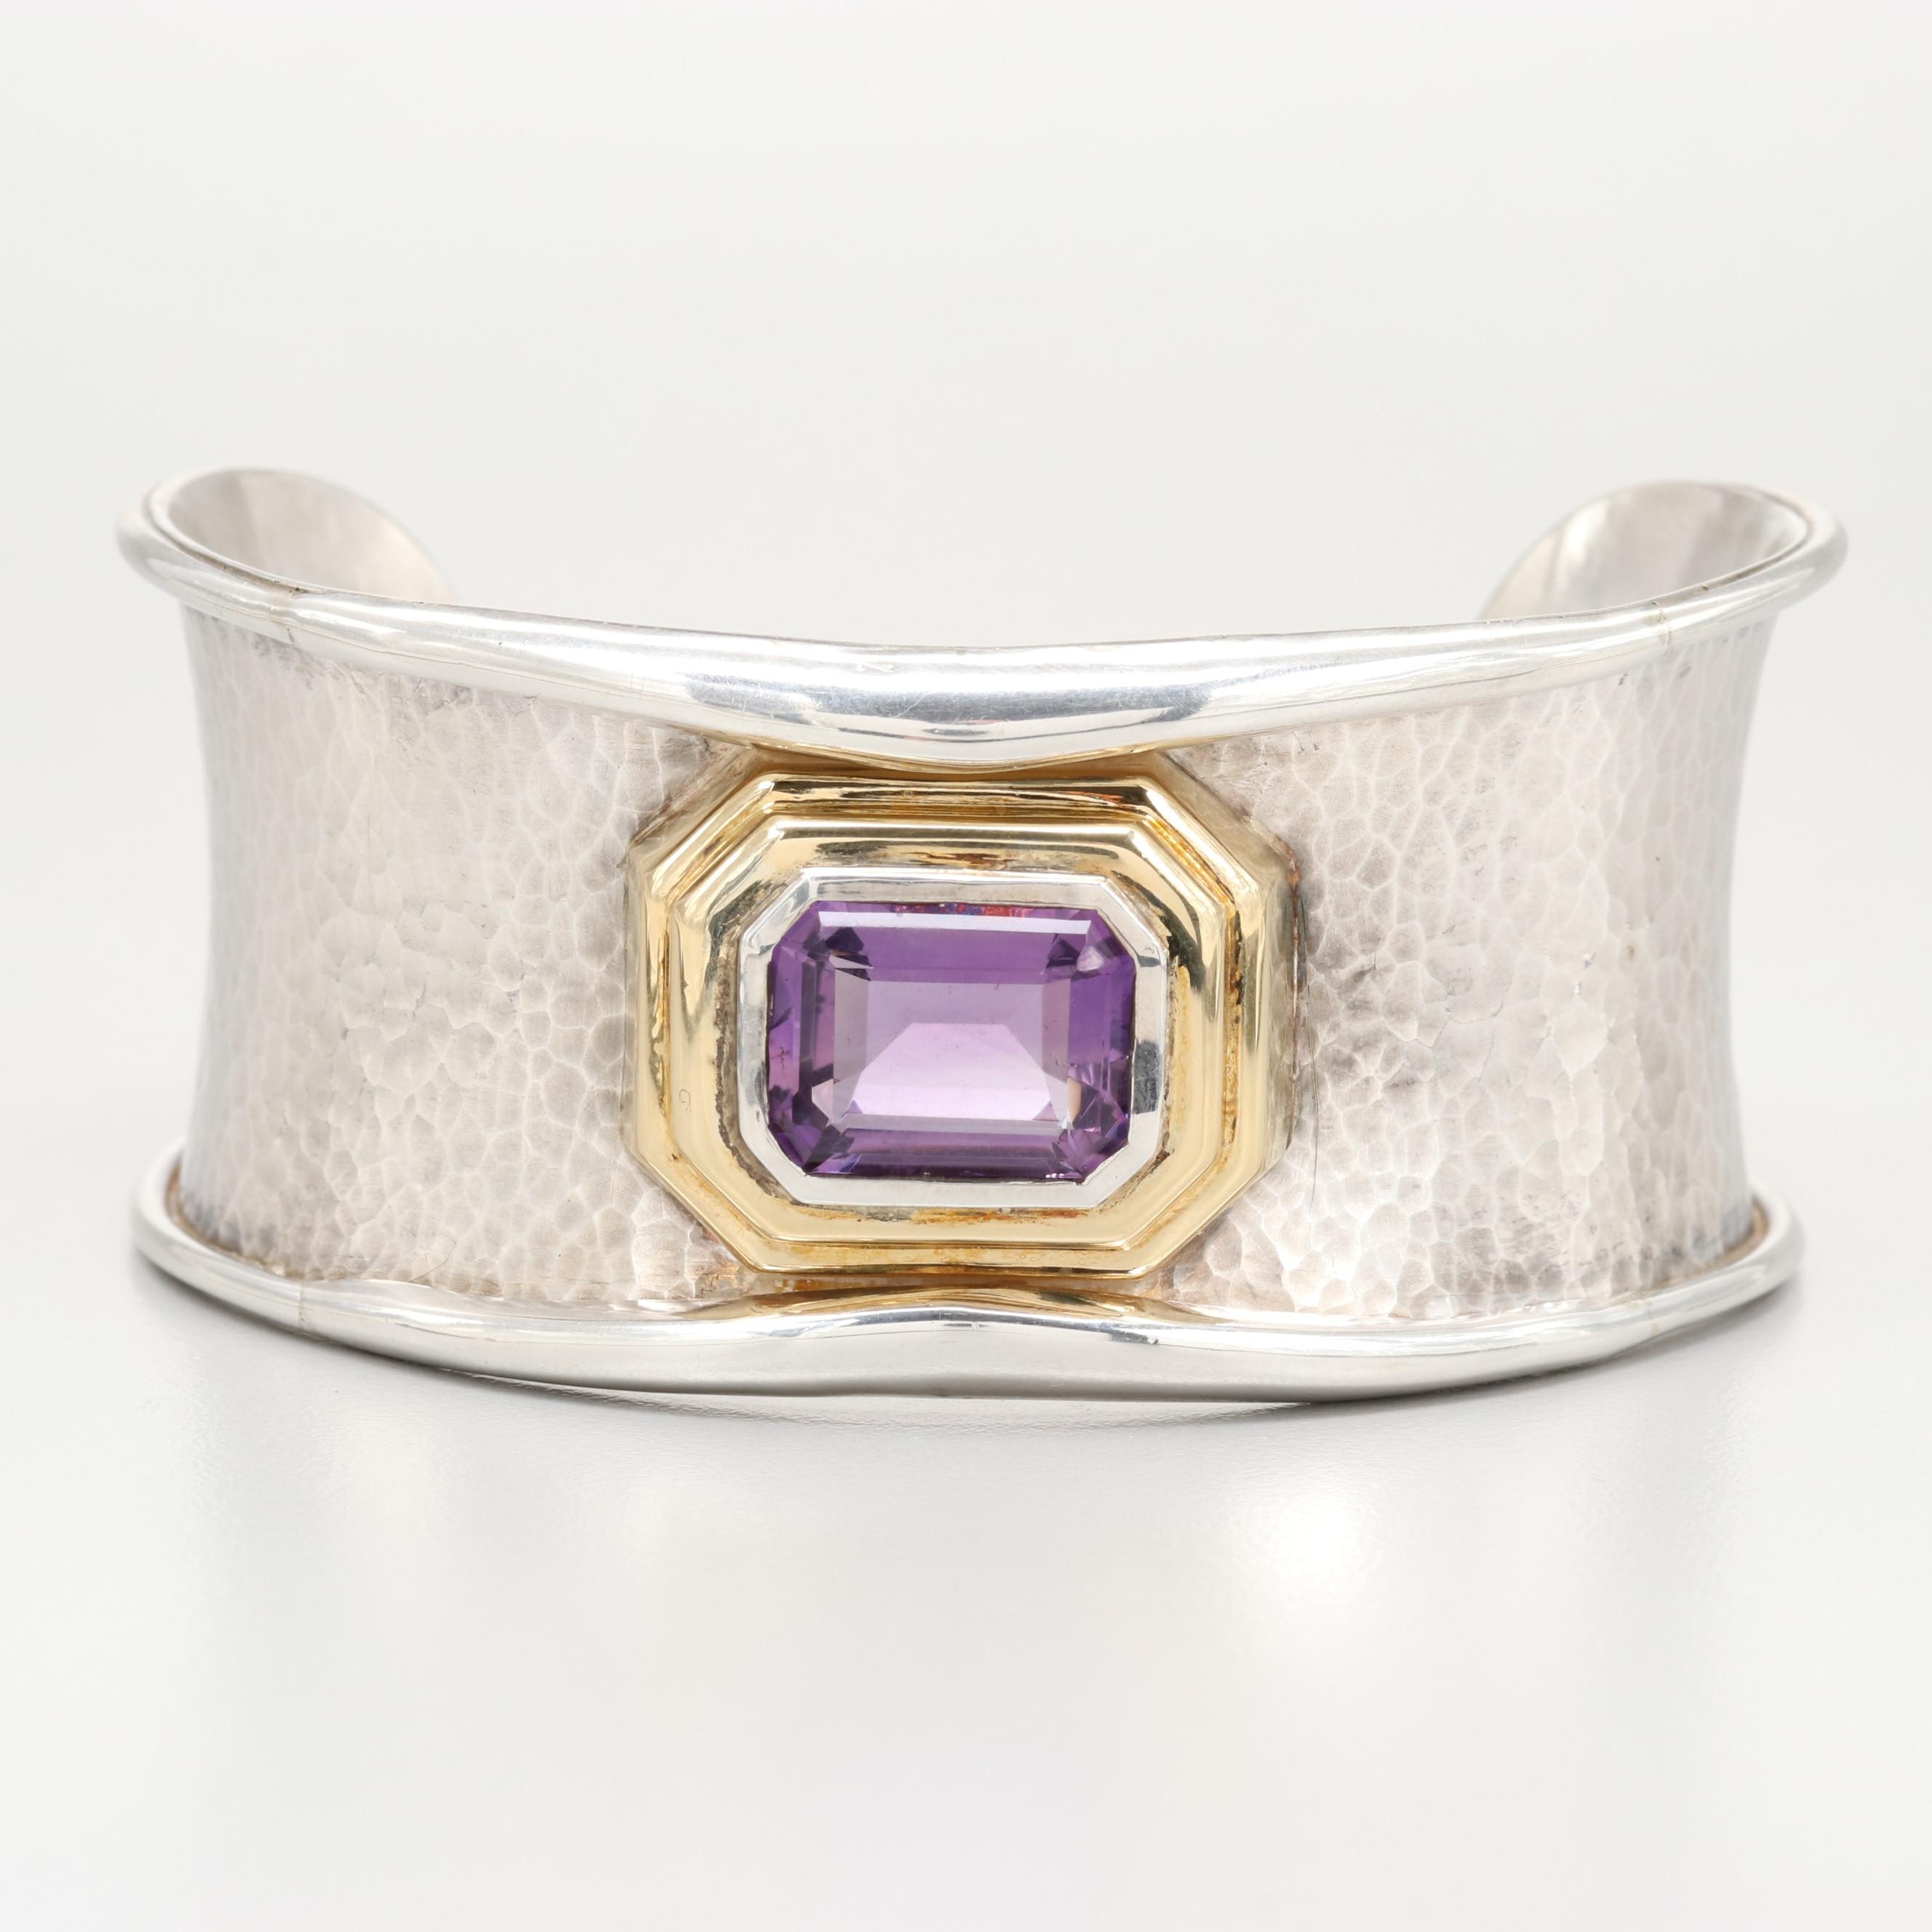 Italian Sterling Silver 8.22 CT Amethyst Cuff Bracelet with 18K Gold Accents